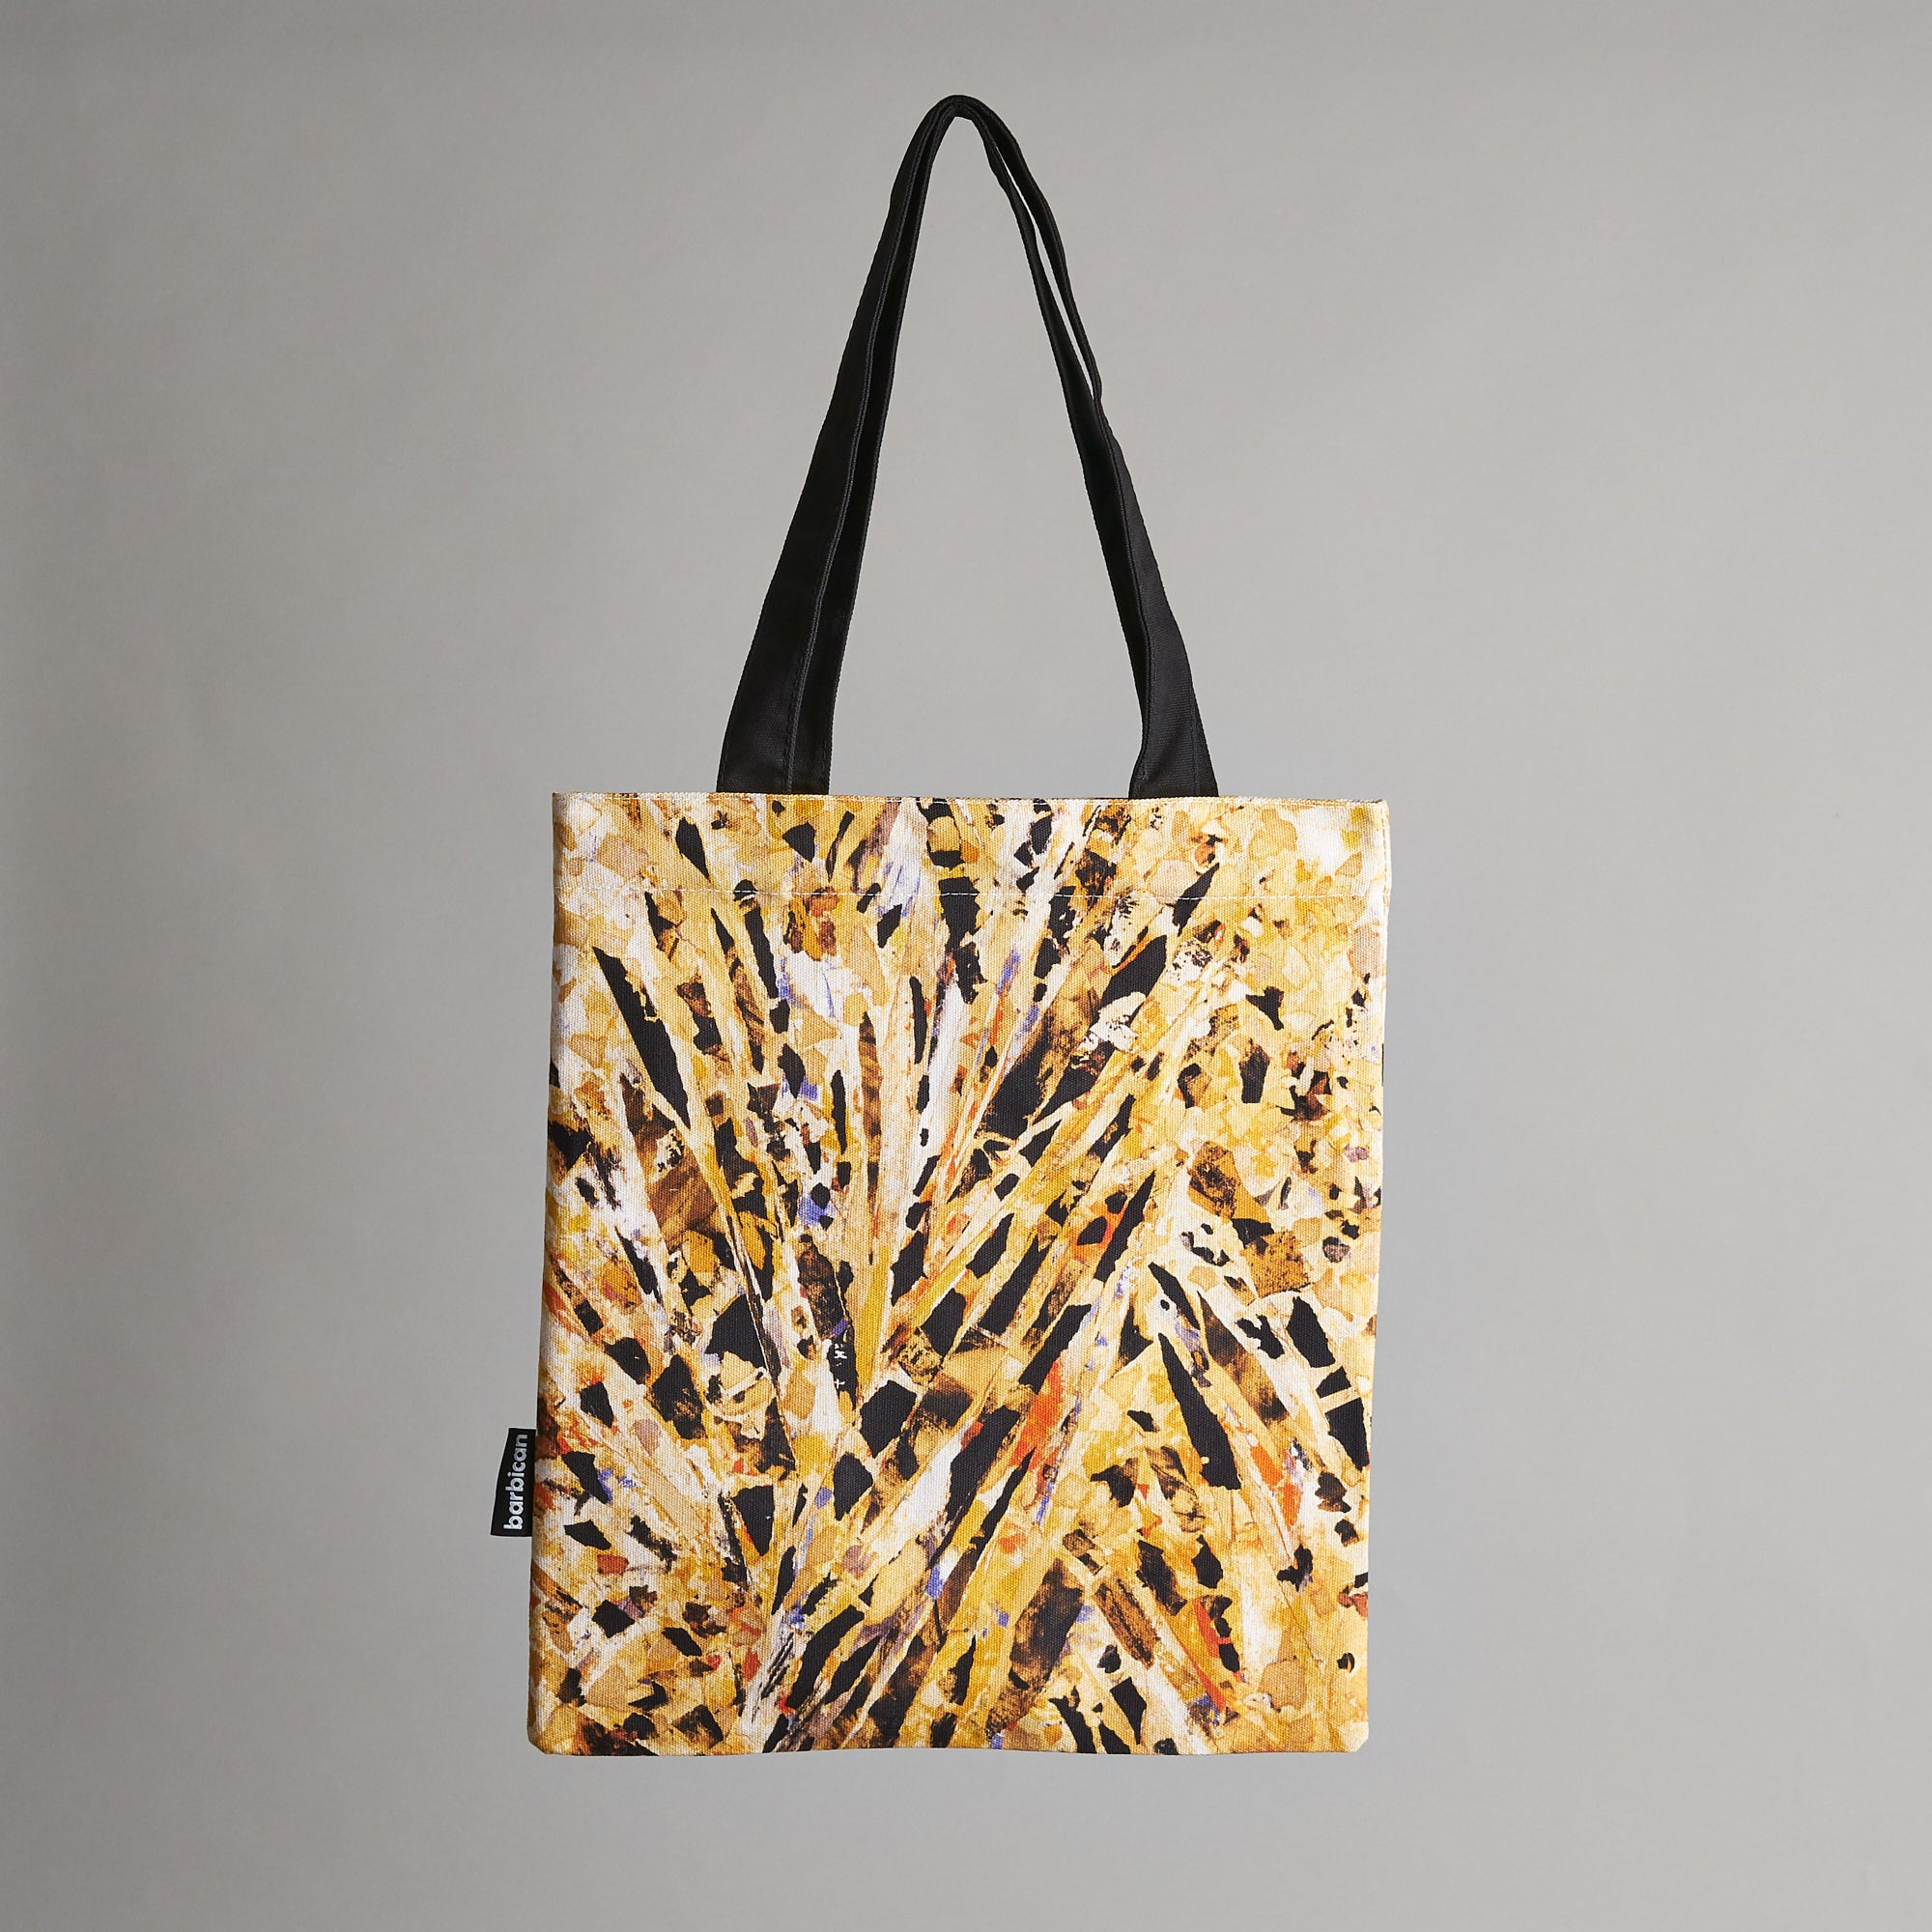 Lee Krasner Tote Bag